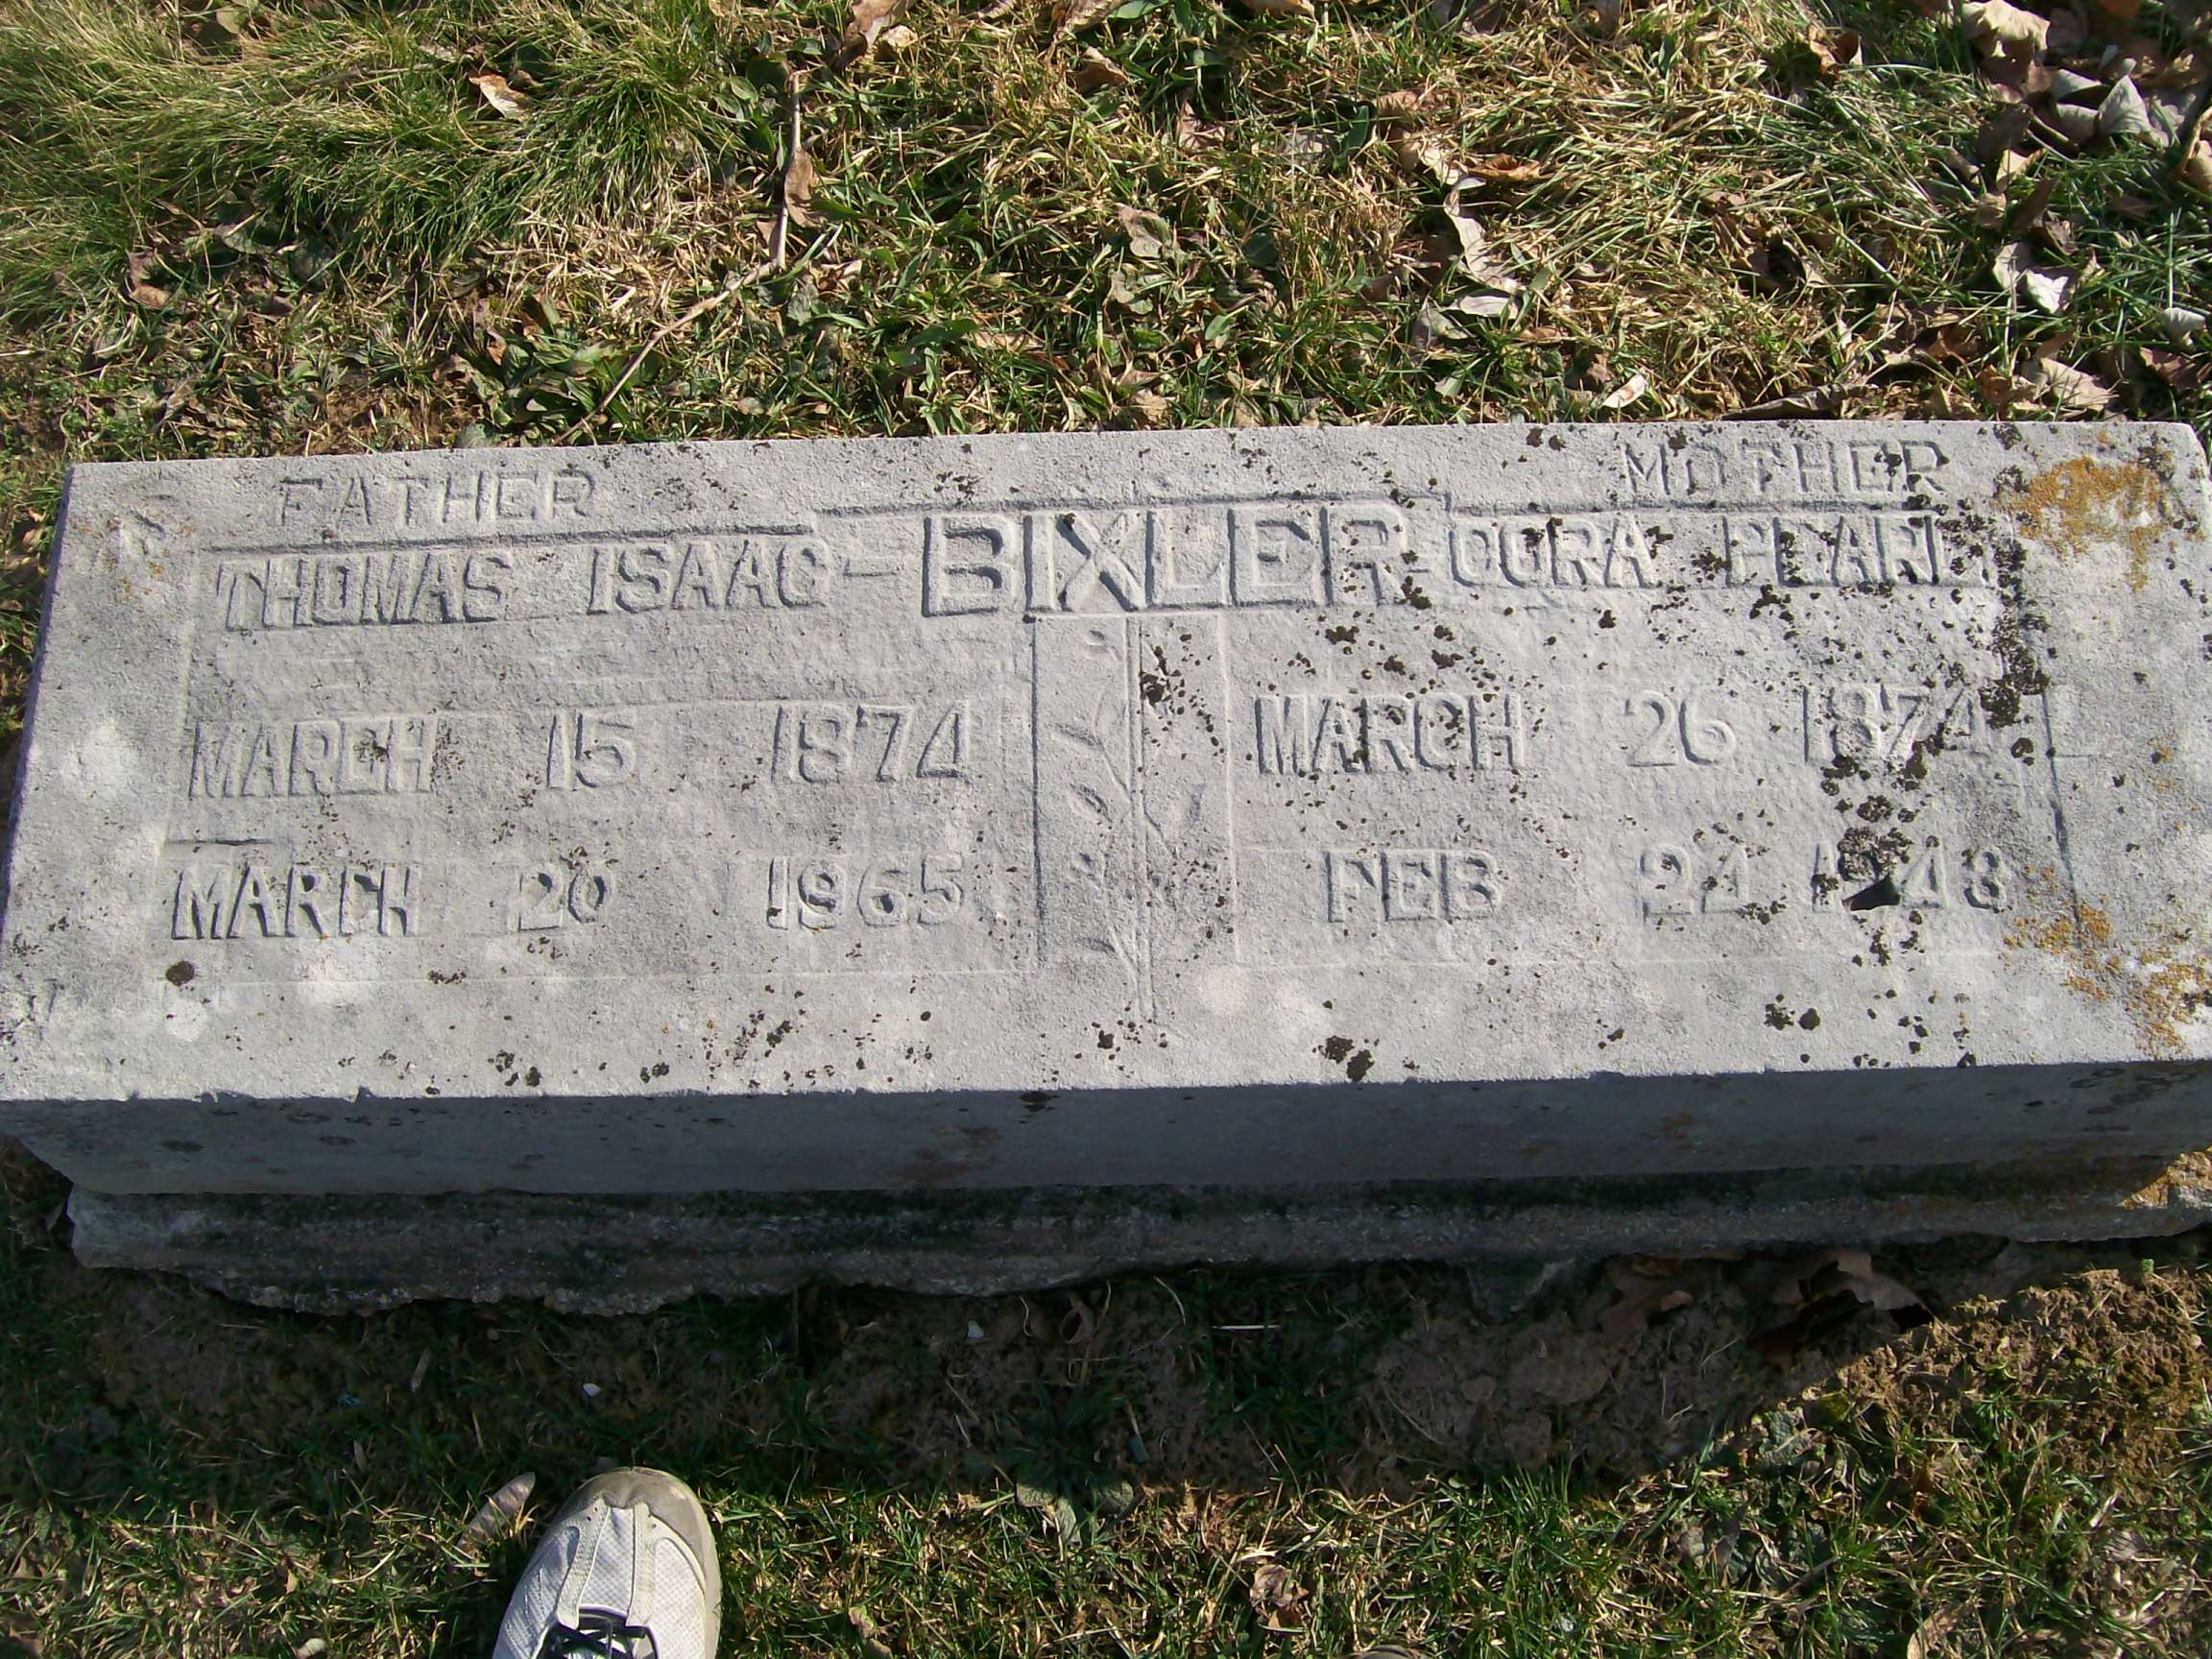 Thomas Bixler - Cora Buford - headstone